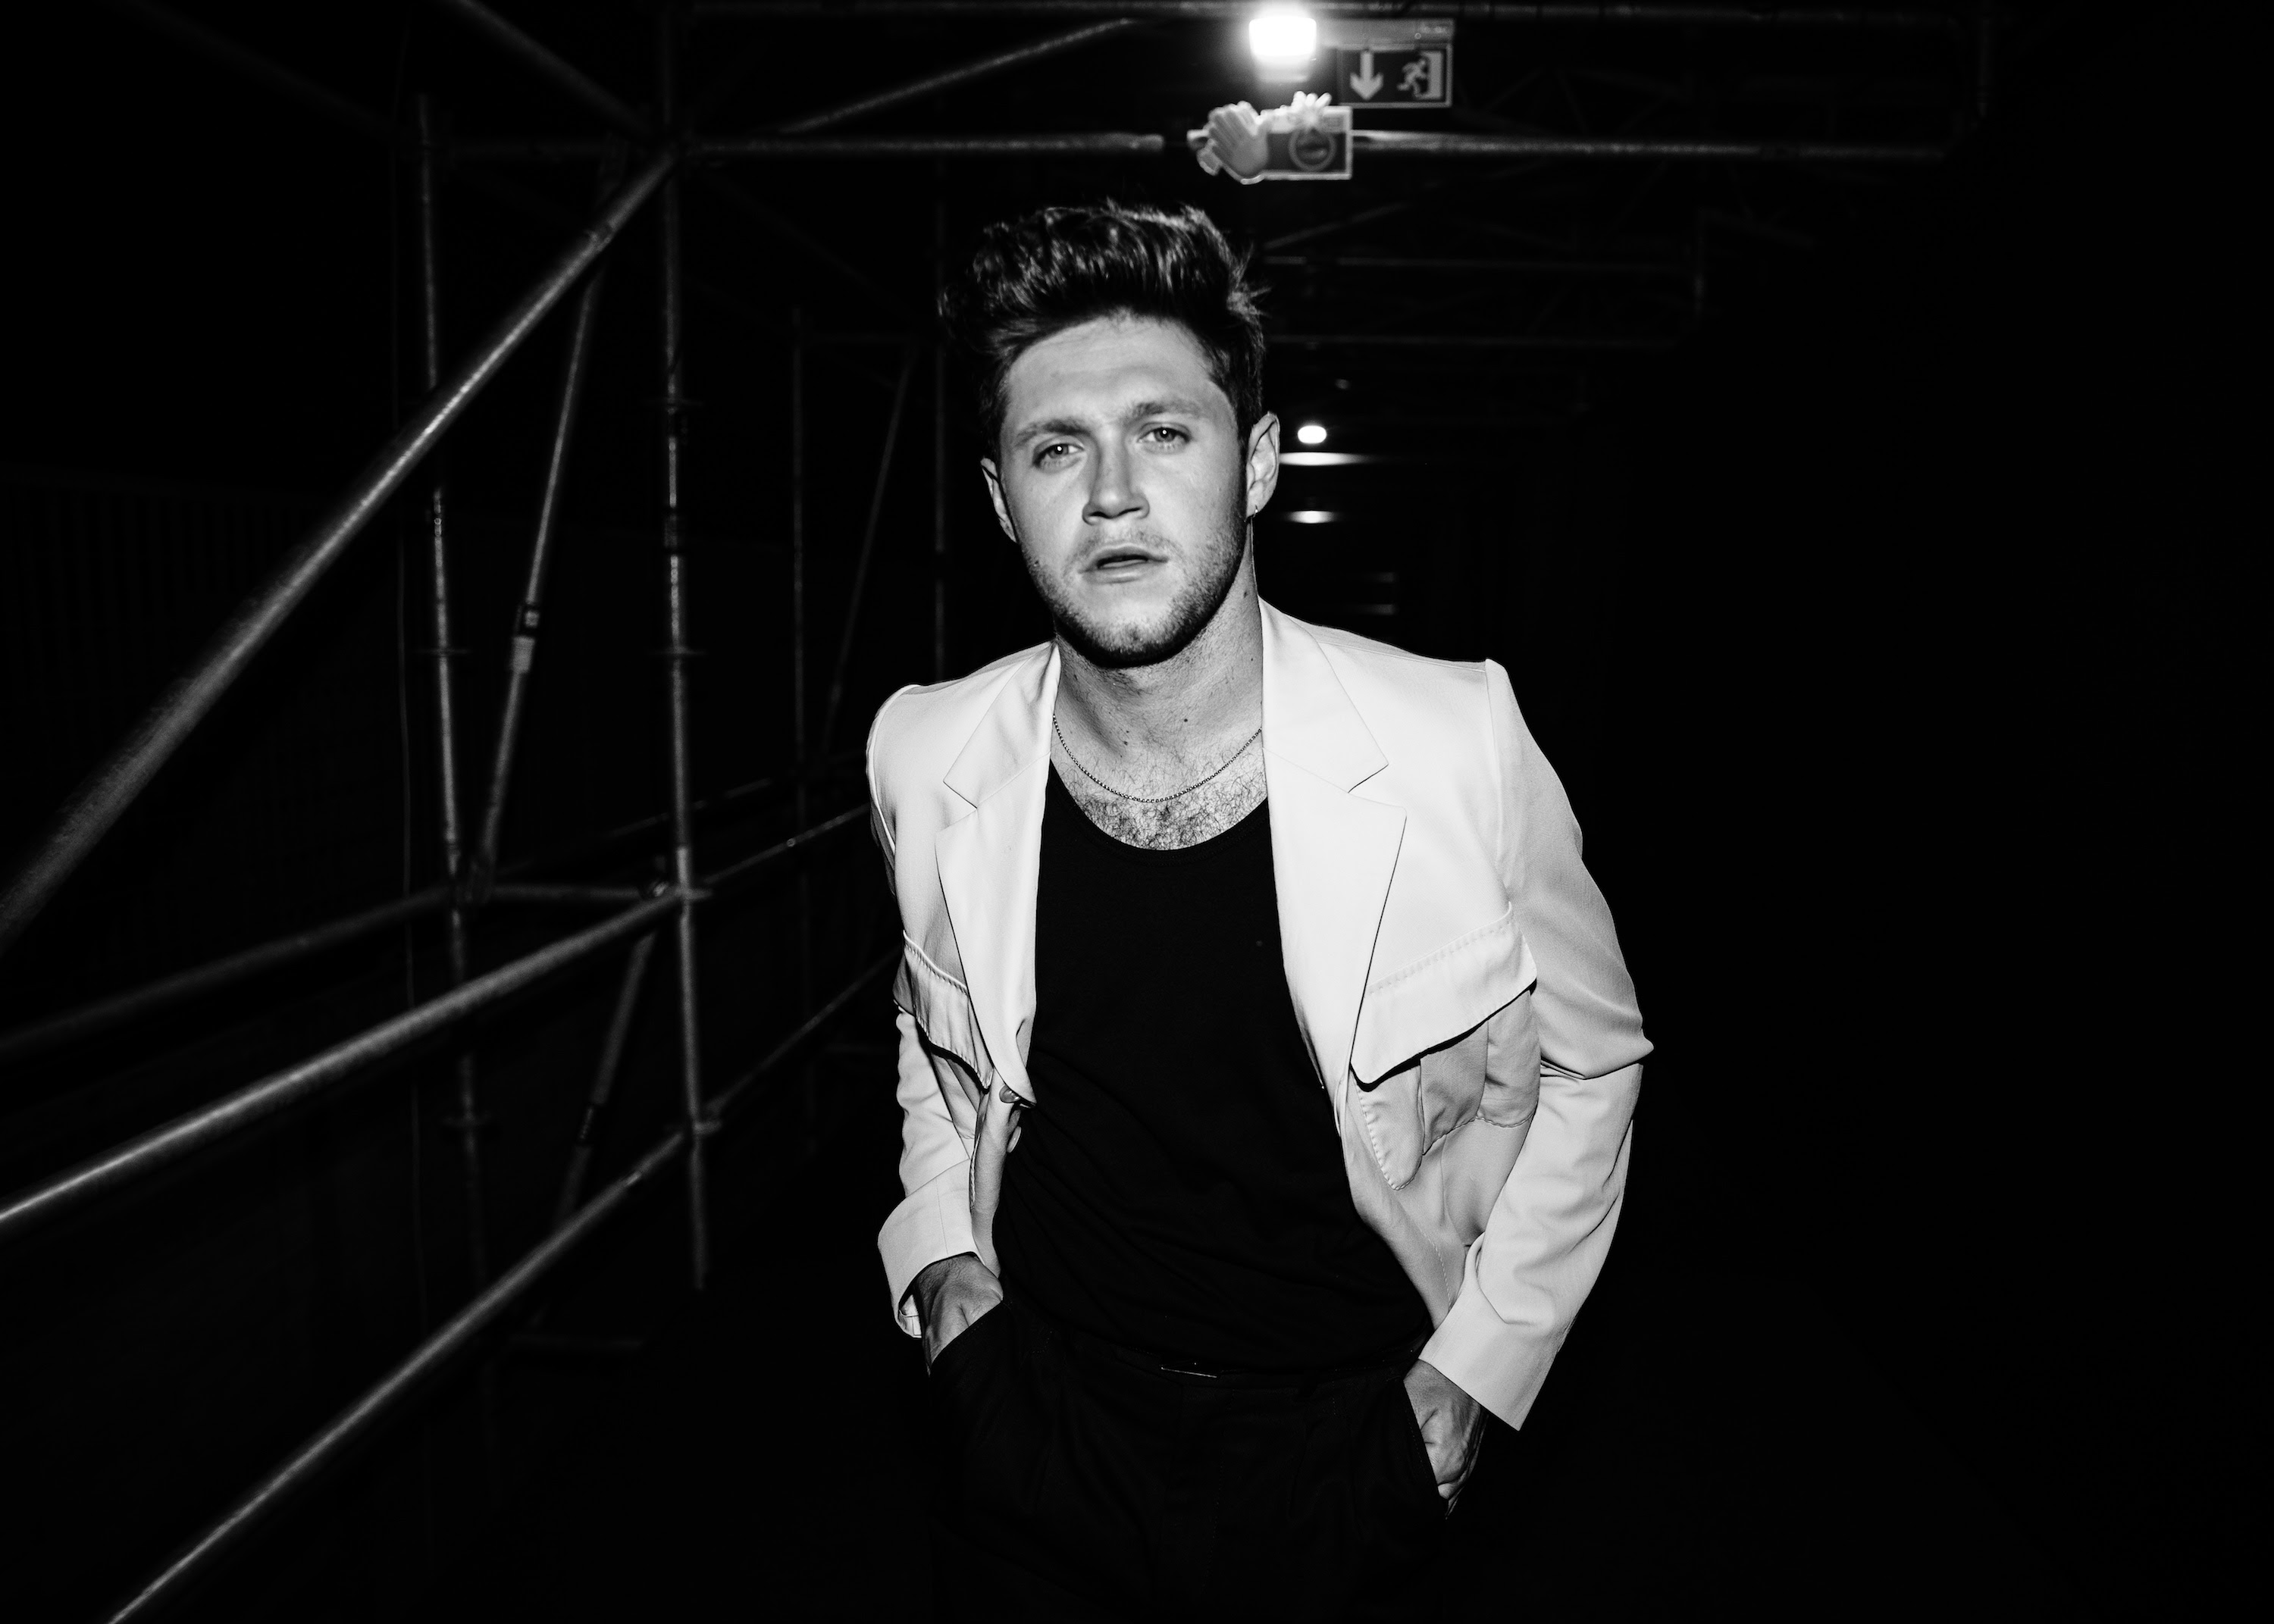 niall horan 2020 press pic supplied